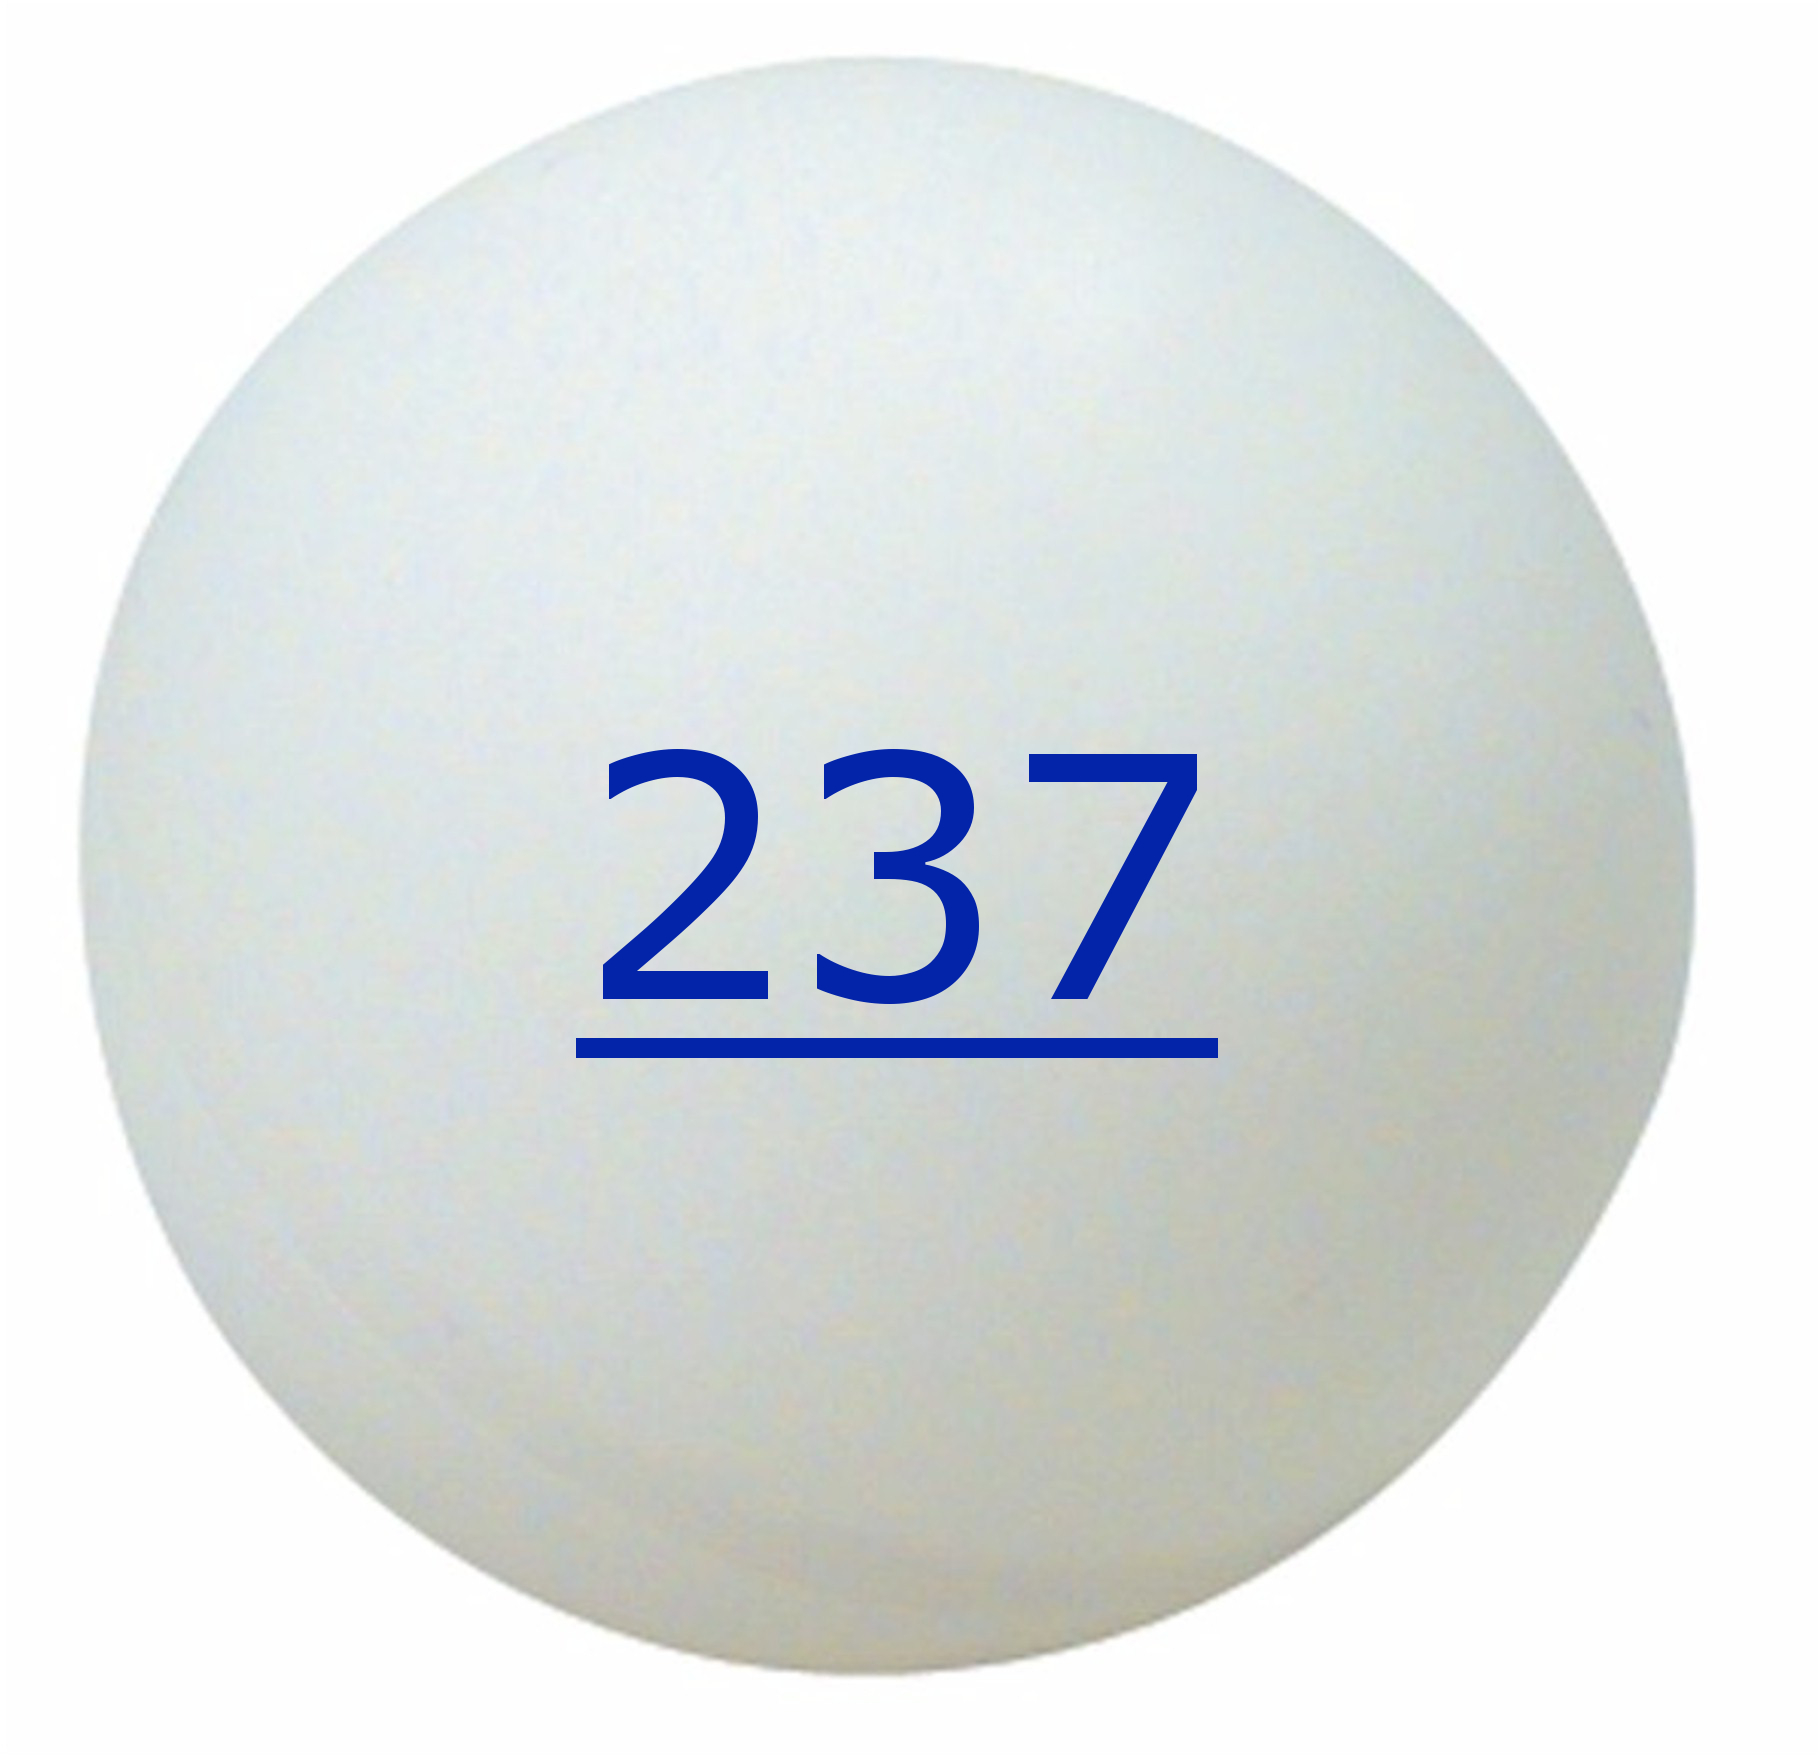 Numbered Ping Pong Balls